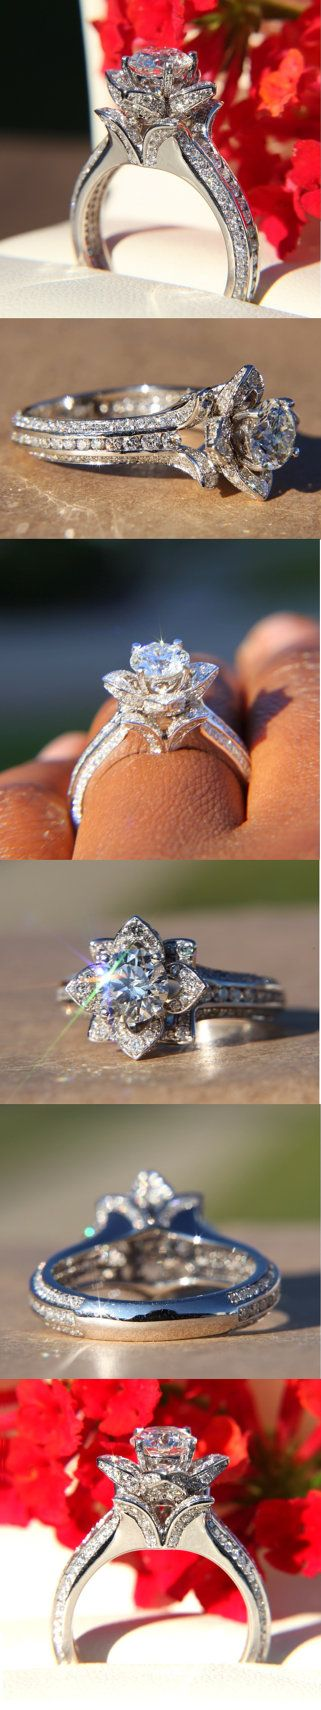 Love all the custom rings from this site!